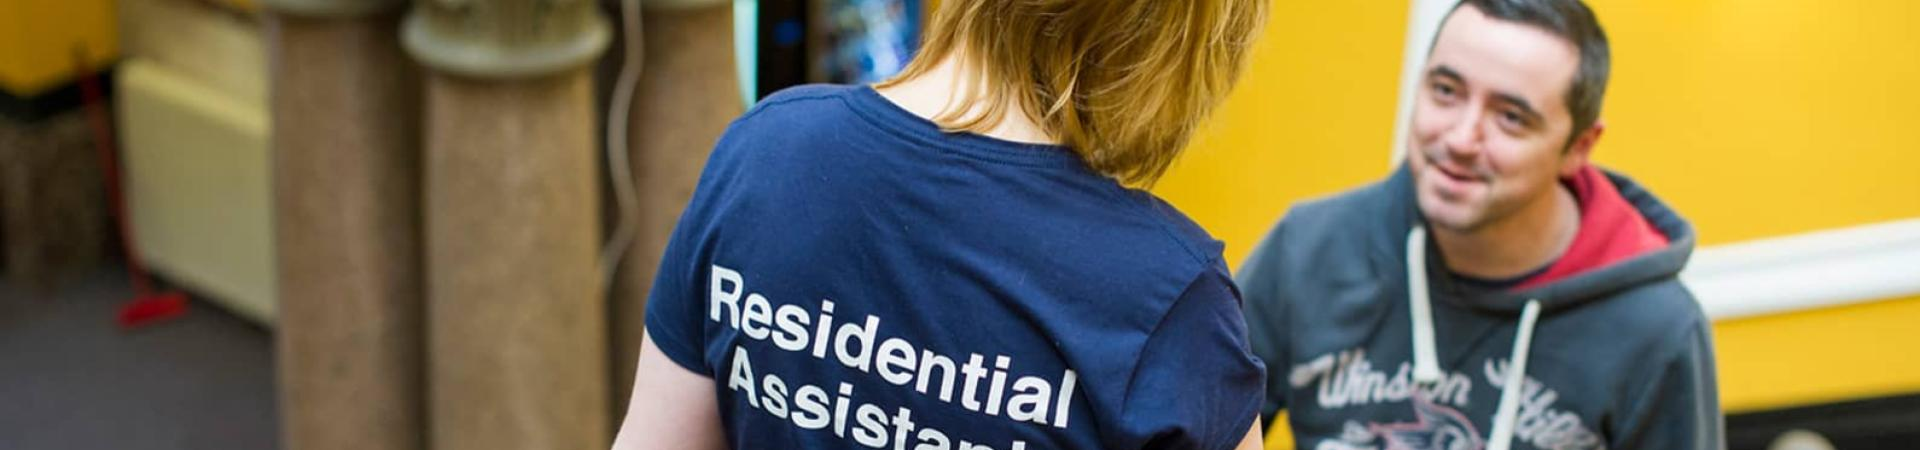 A residential assistant speaks with a student in the communal area.